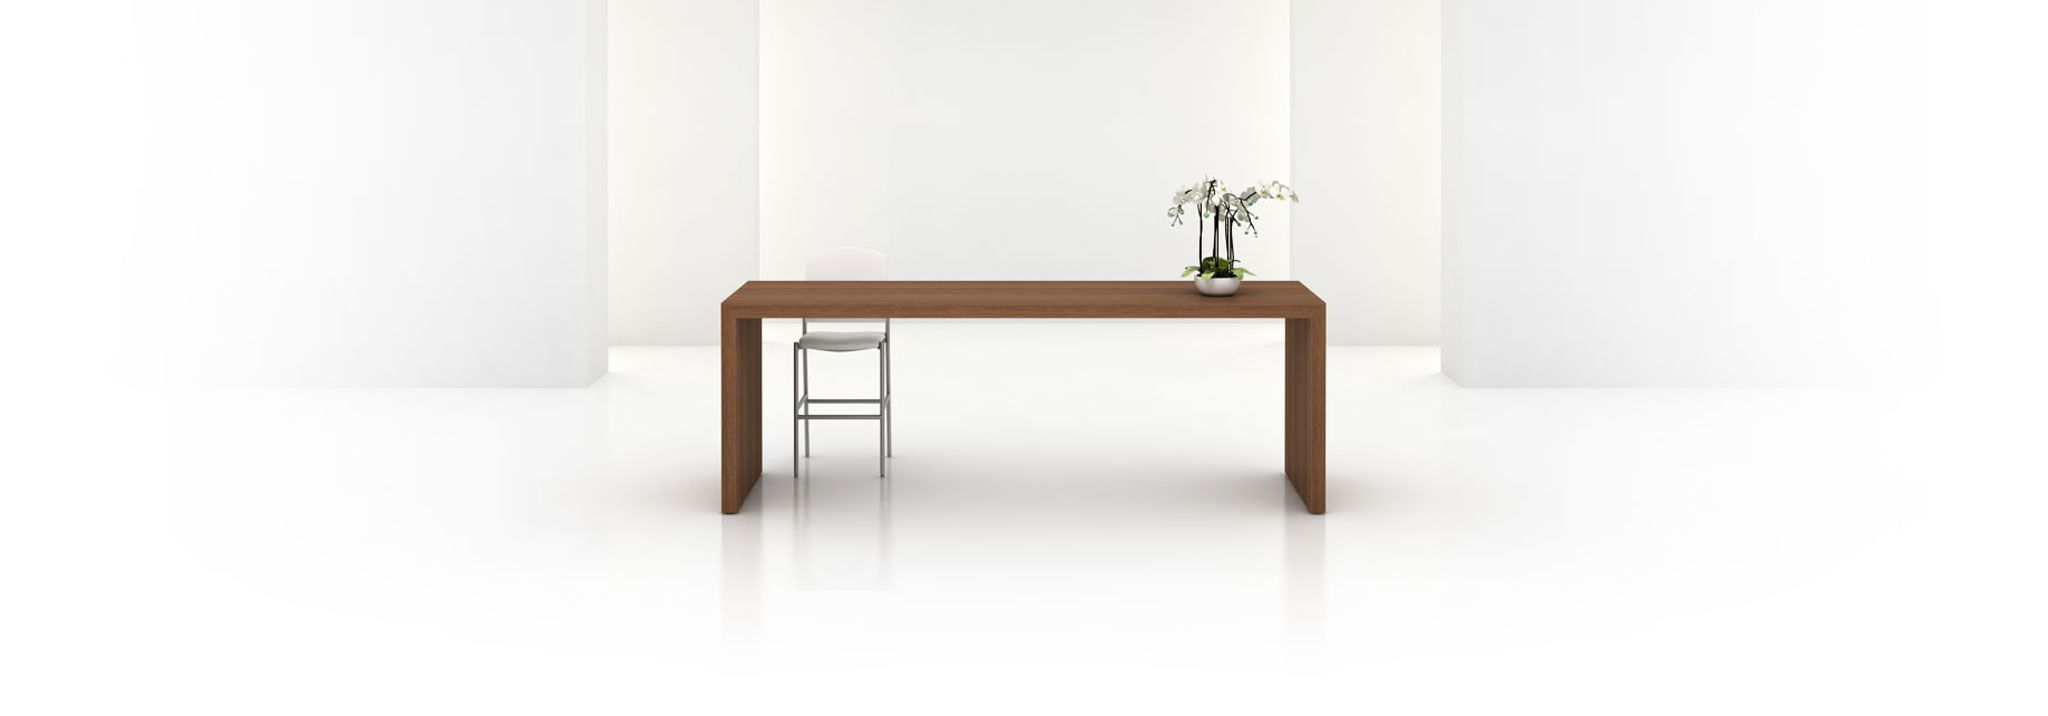 Charming Parsons Tables Nevins